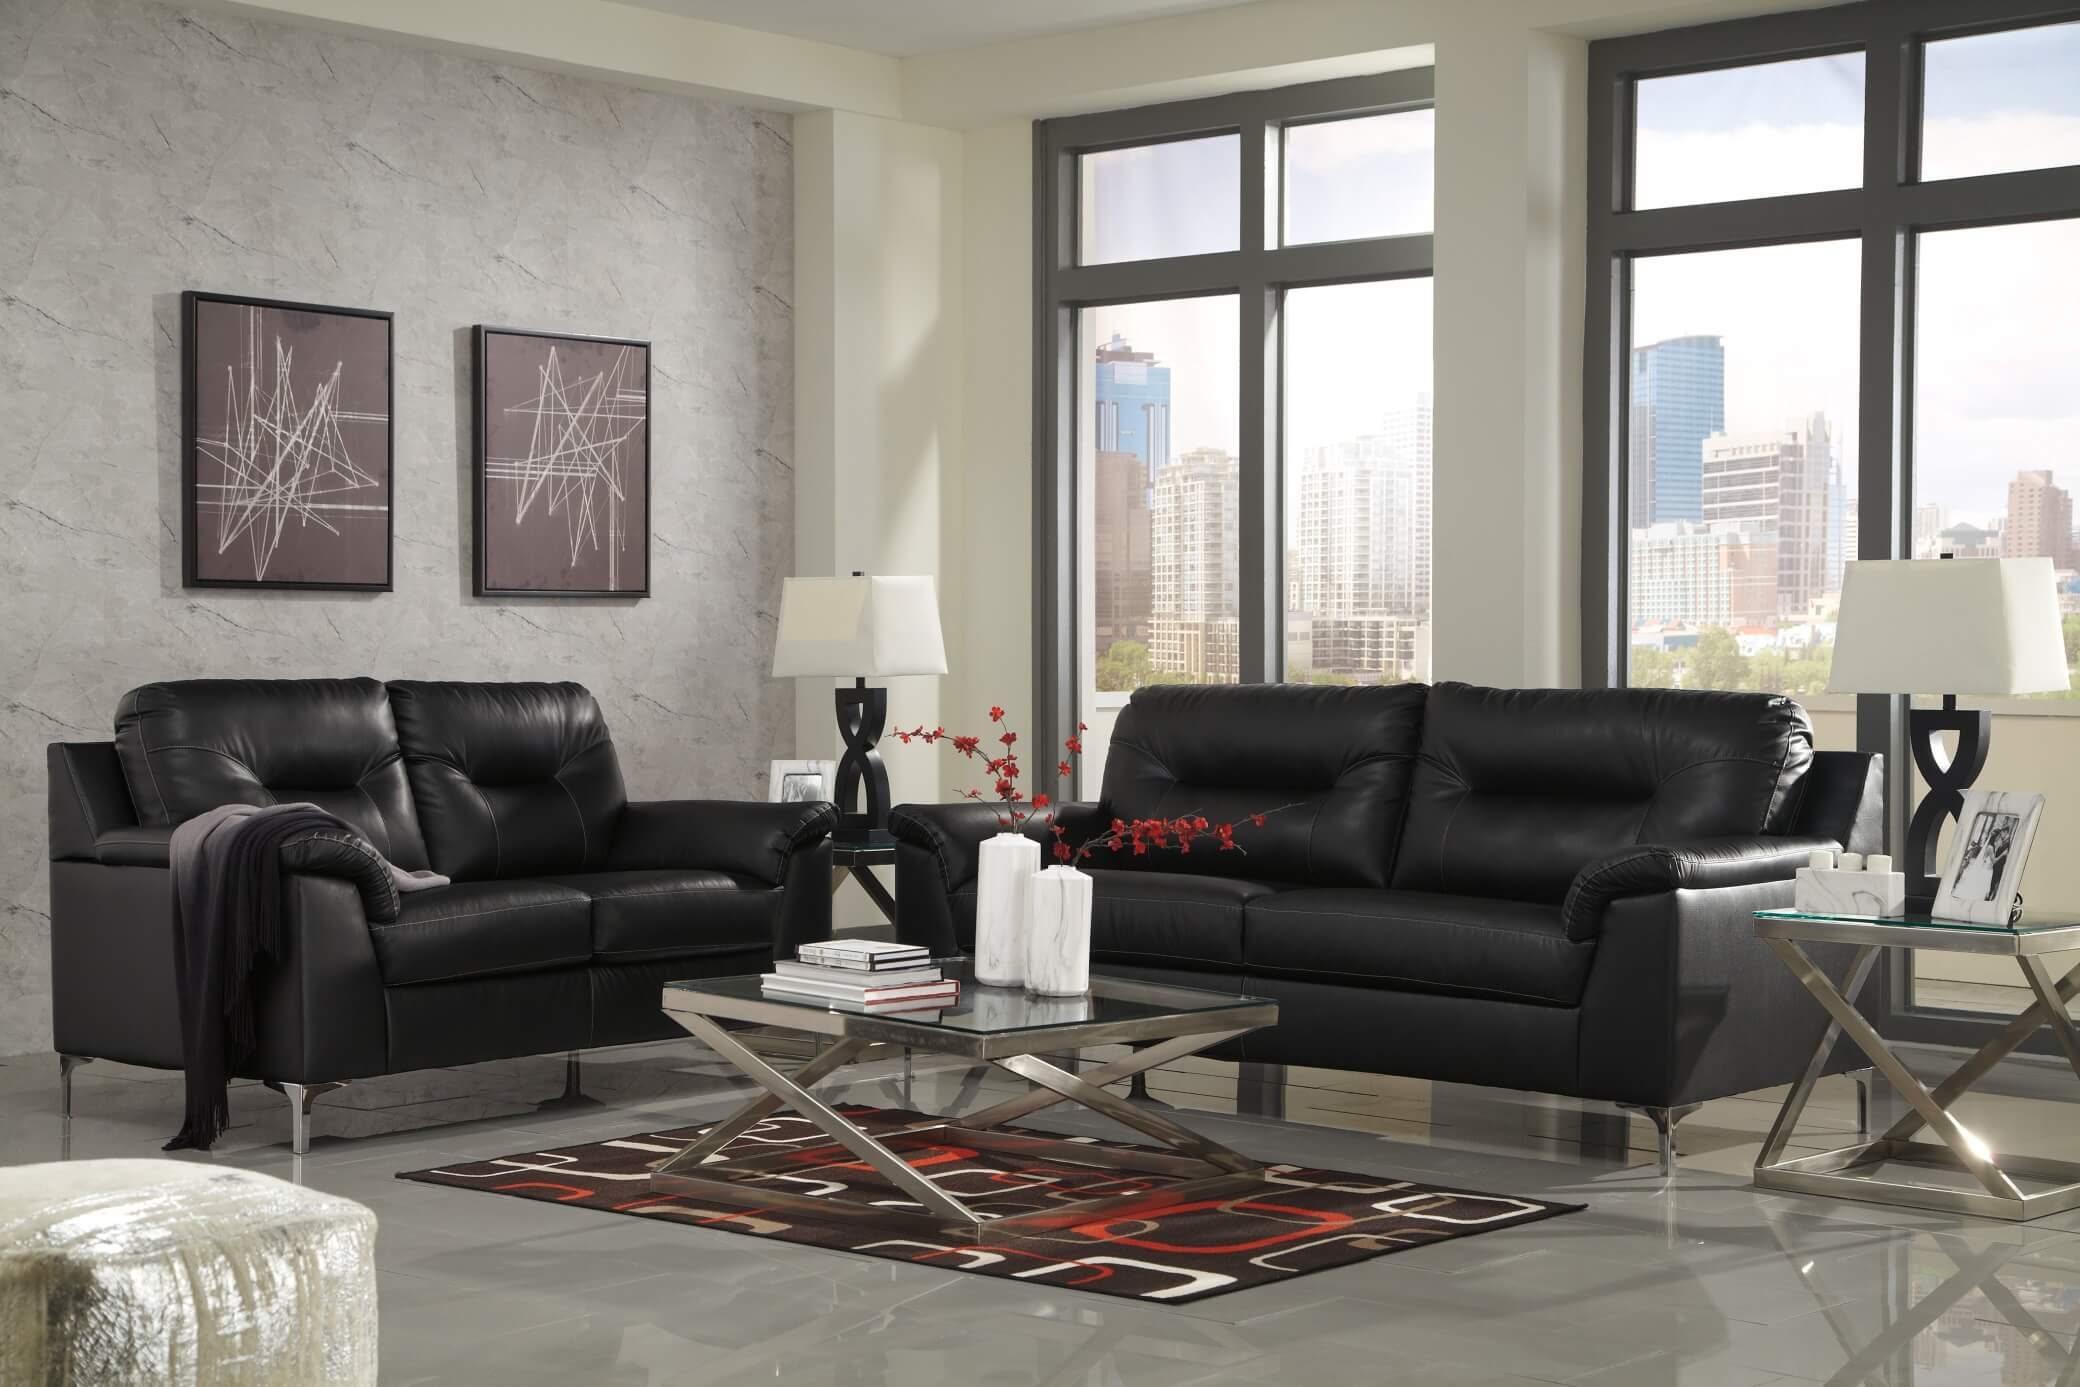 Tensas Black Contemporary Living Room Set Leather Living Room Sets regarding 14 Genius Tricks of How to Build Modern Leather Living Room Set